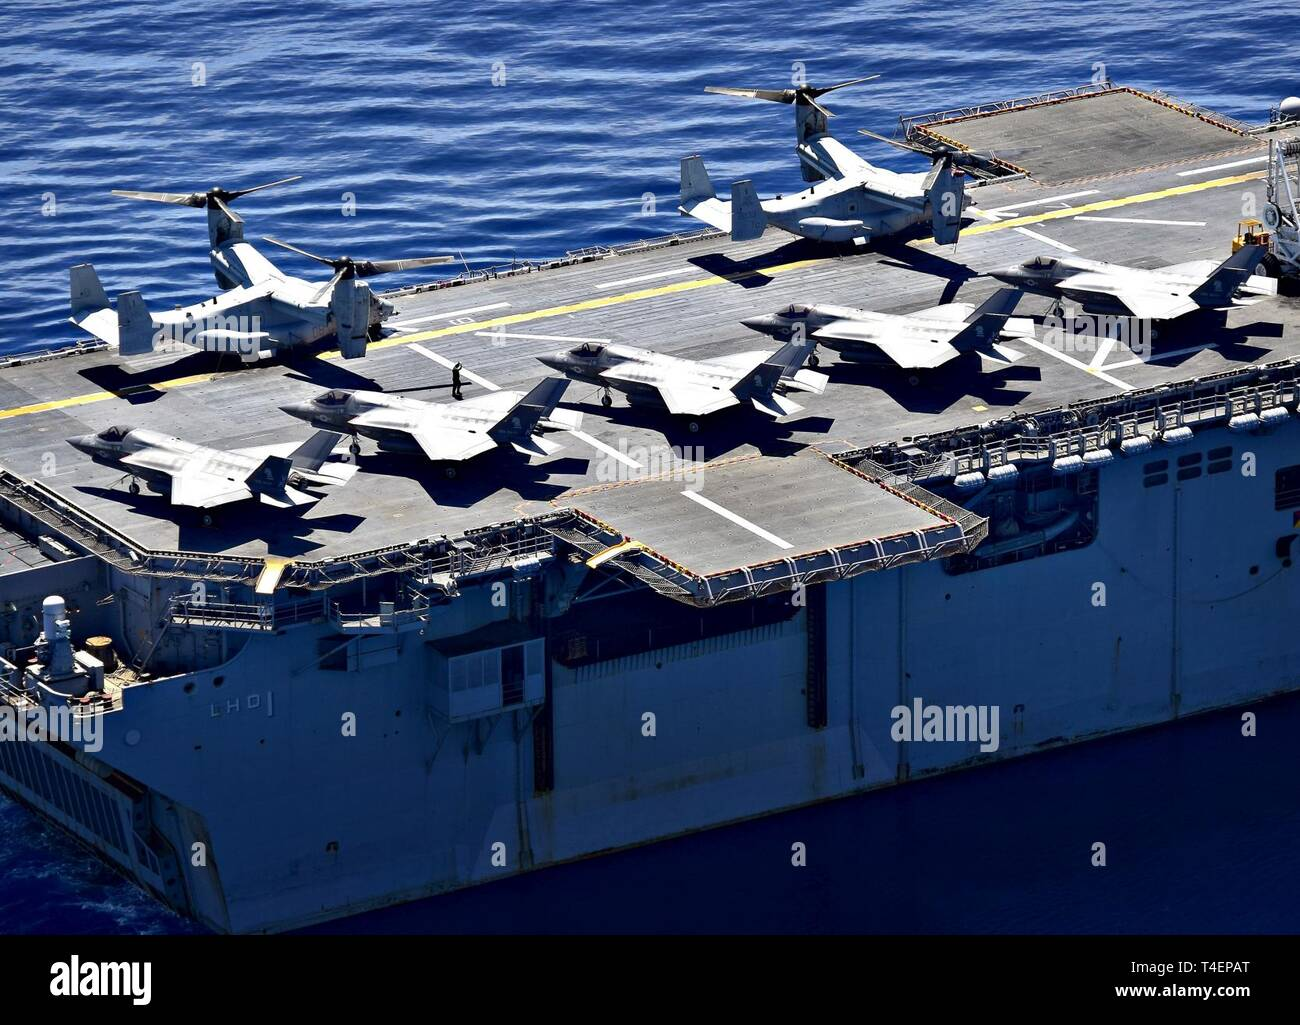 SOUTH CHINA SEA (March 29, 2019) F-35B Lightning II aircraft, assigned to Marine Fighter Attack Squadron (VMFA) 121, and MV-22 Osprey, assigned to Marine Medium Tiltrotor Squadron (VMM) 268, are secured to the flight deck aboard the amphibious assault ship USS Wasp (LHD 1). Wasp, flagship of Wasp Amphibious Ready Group, is operating in the Indo-Pacific region to enhance interoperability with partners and serve as a lethal, ready-response force for any type of contingency. - Stock Image